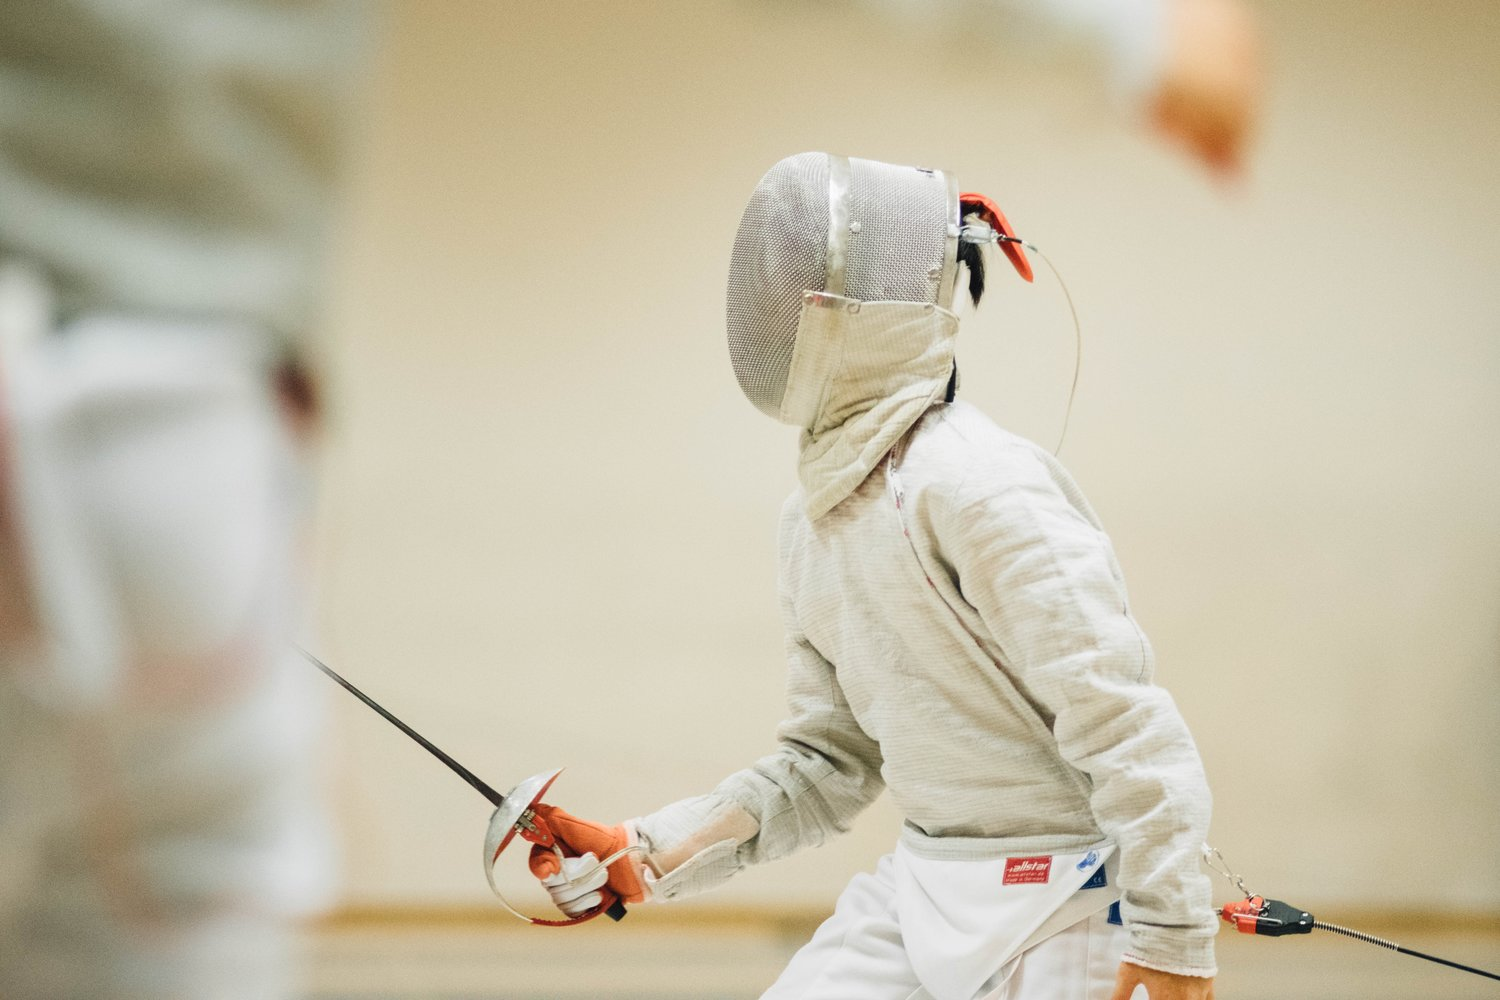 fencing student